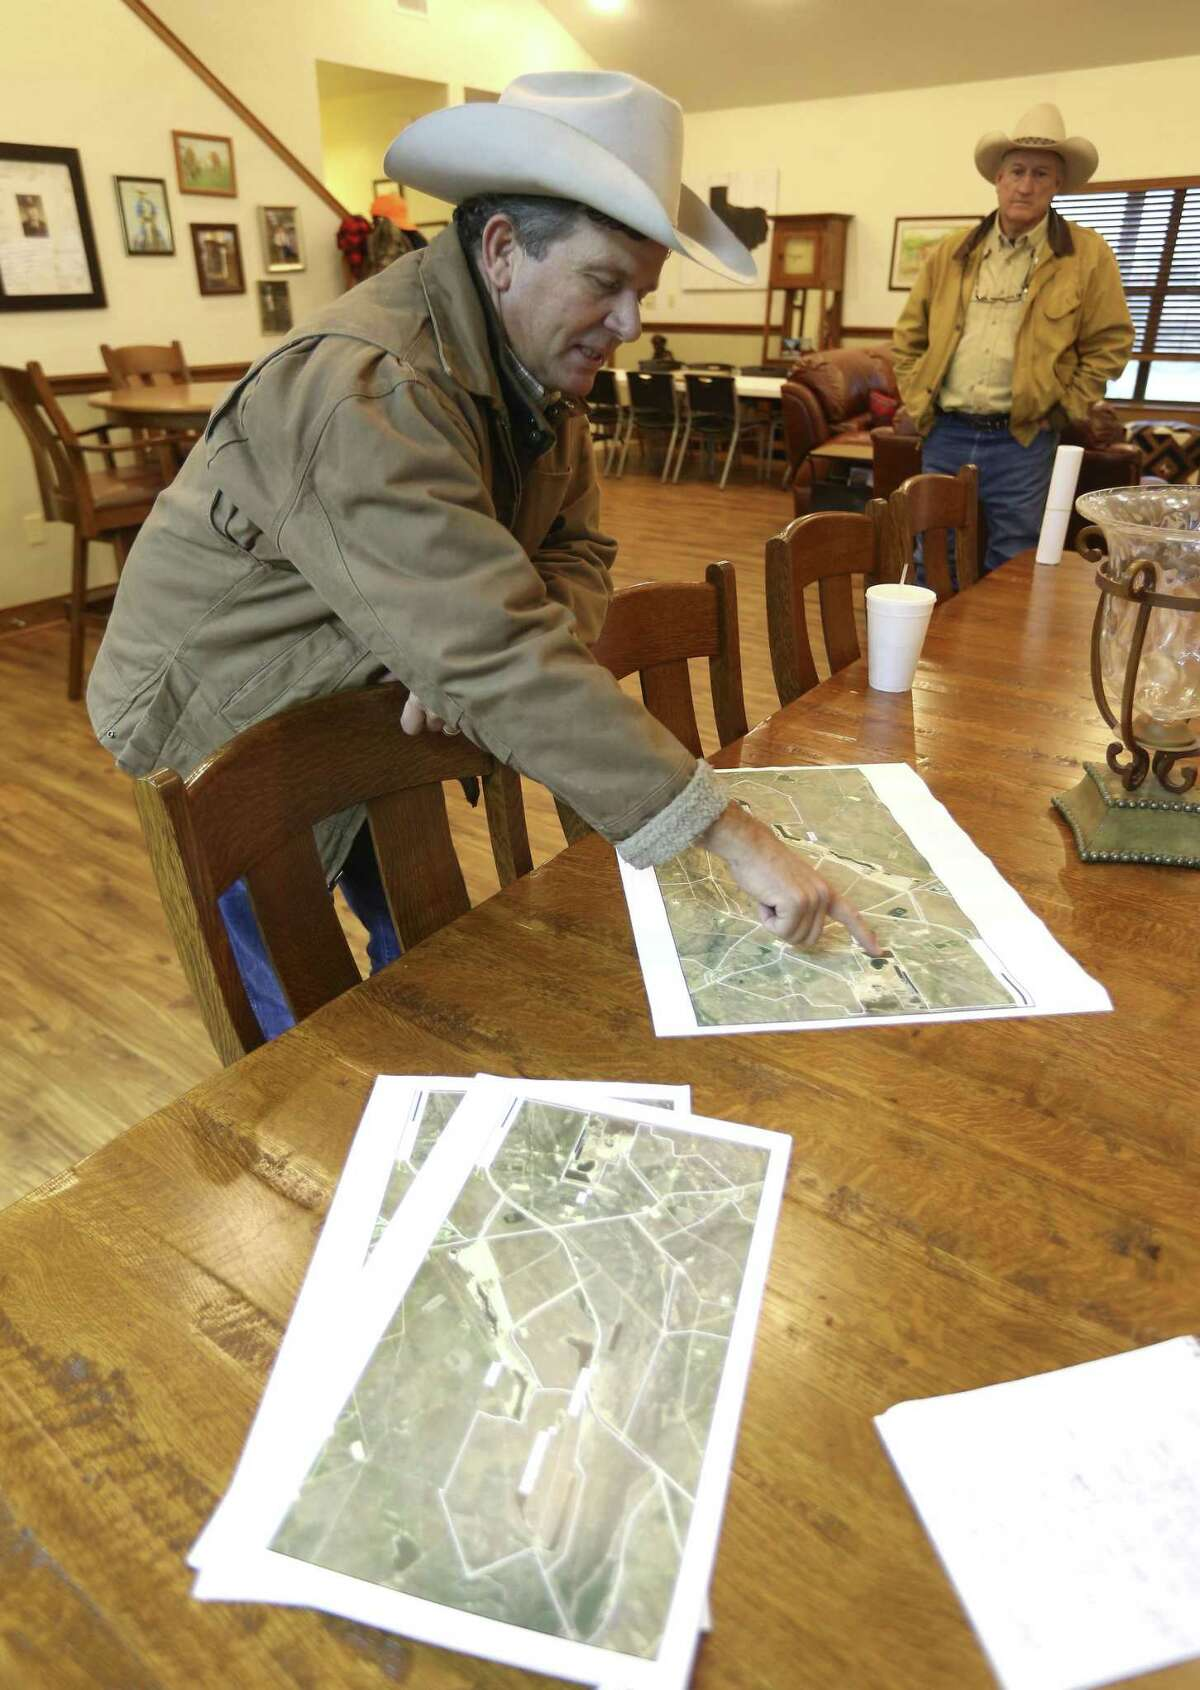 Jason Peeler points to maps of his family's ranch Wednesday, Jan. 16, 2018, as he tells visitors to the ranch about damage he says has been caused to parts of the property by San Miguel Electric Cooperative's coal-burning power plant.